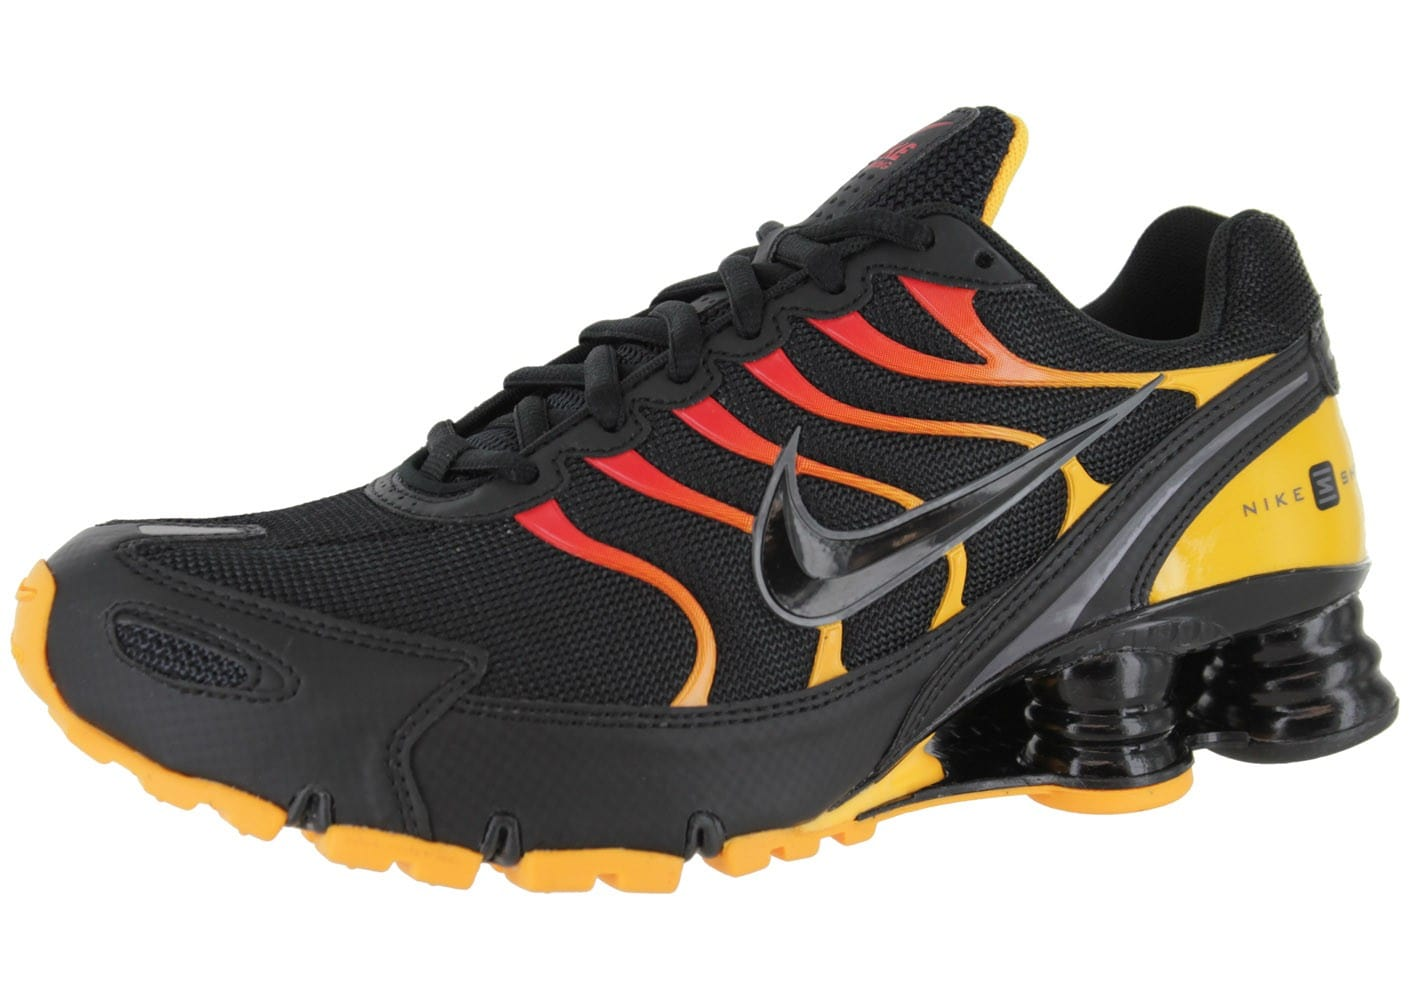 Homme Chausport Baskets Turbo Orange Noir Vi Chaussures Shox Nike qUw0xRa6Cf